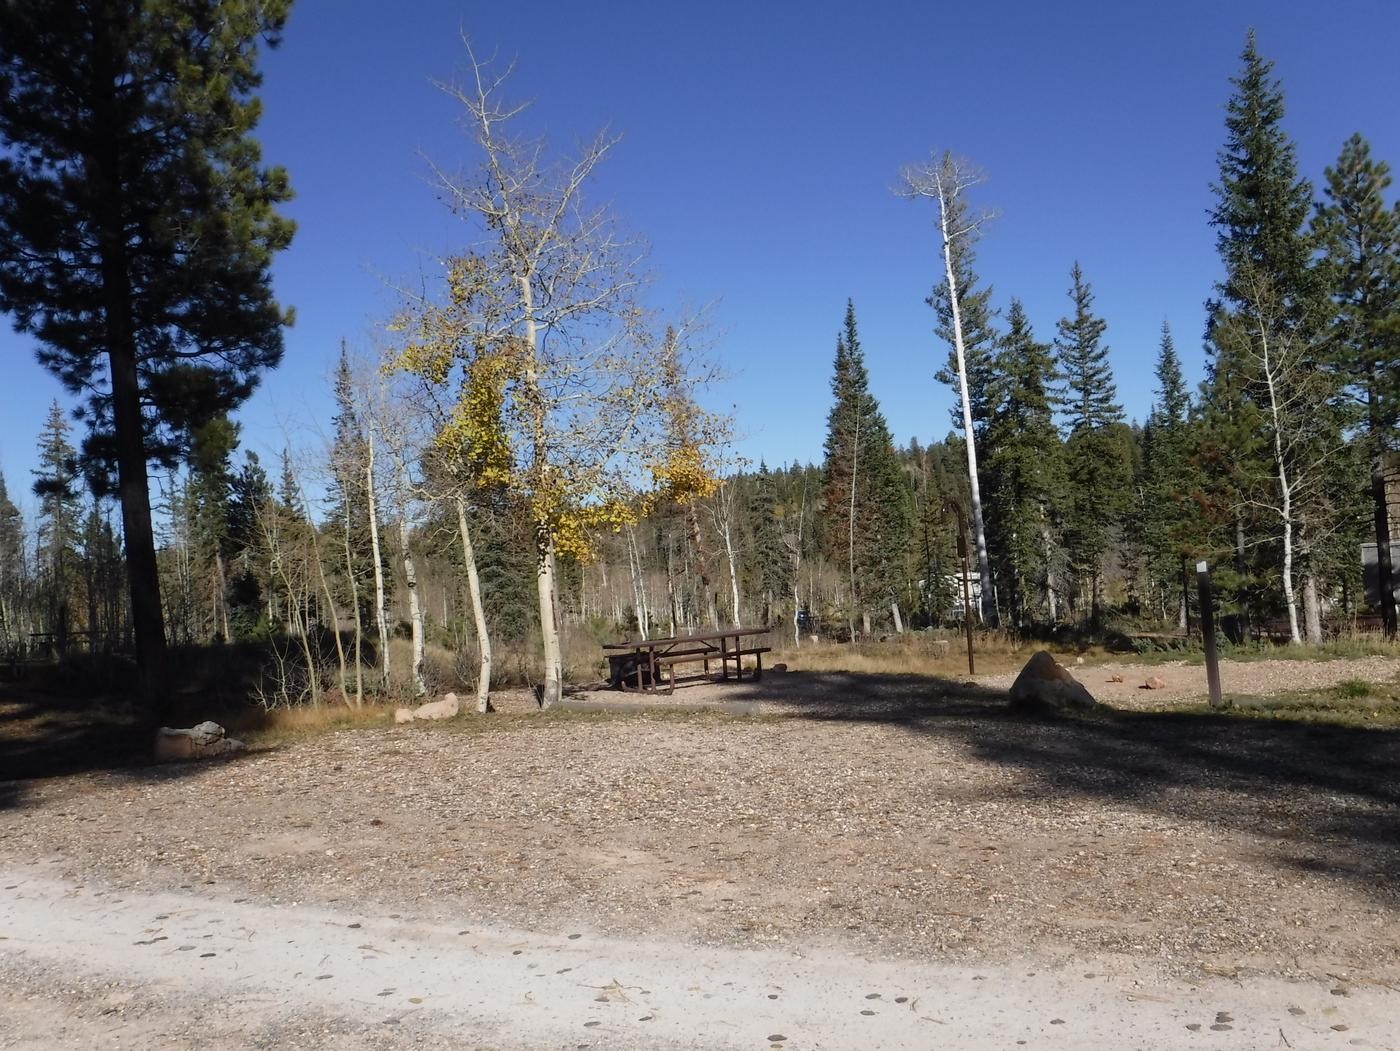 Jacob Lake site #21 featuring entrance, parking, and full camp space view.